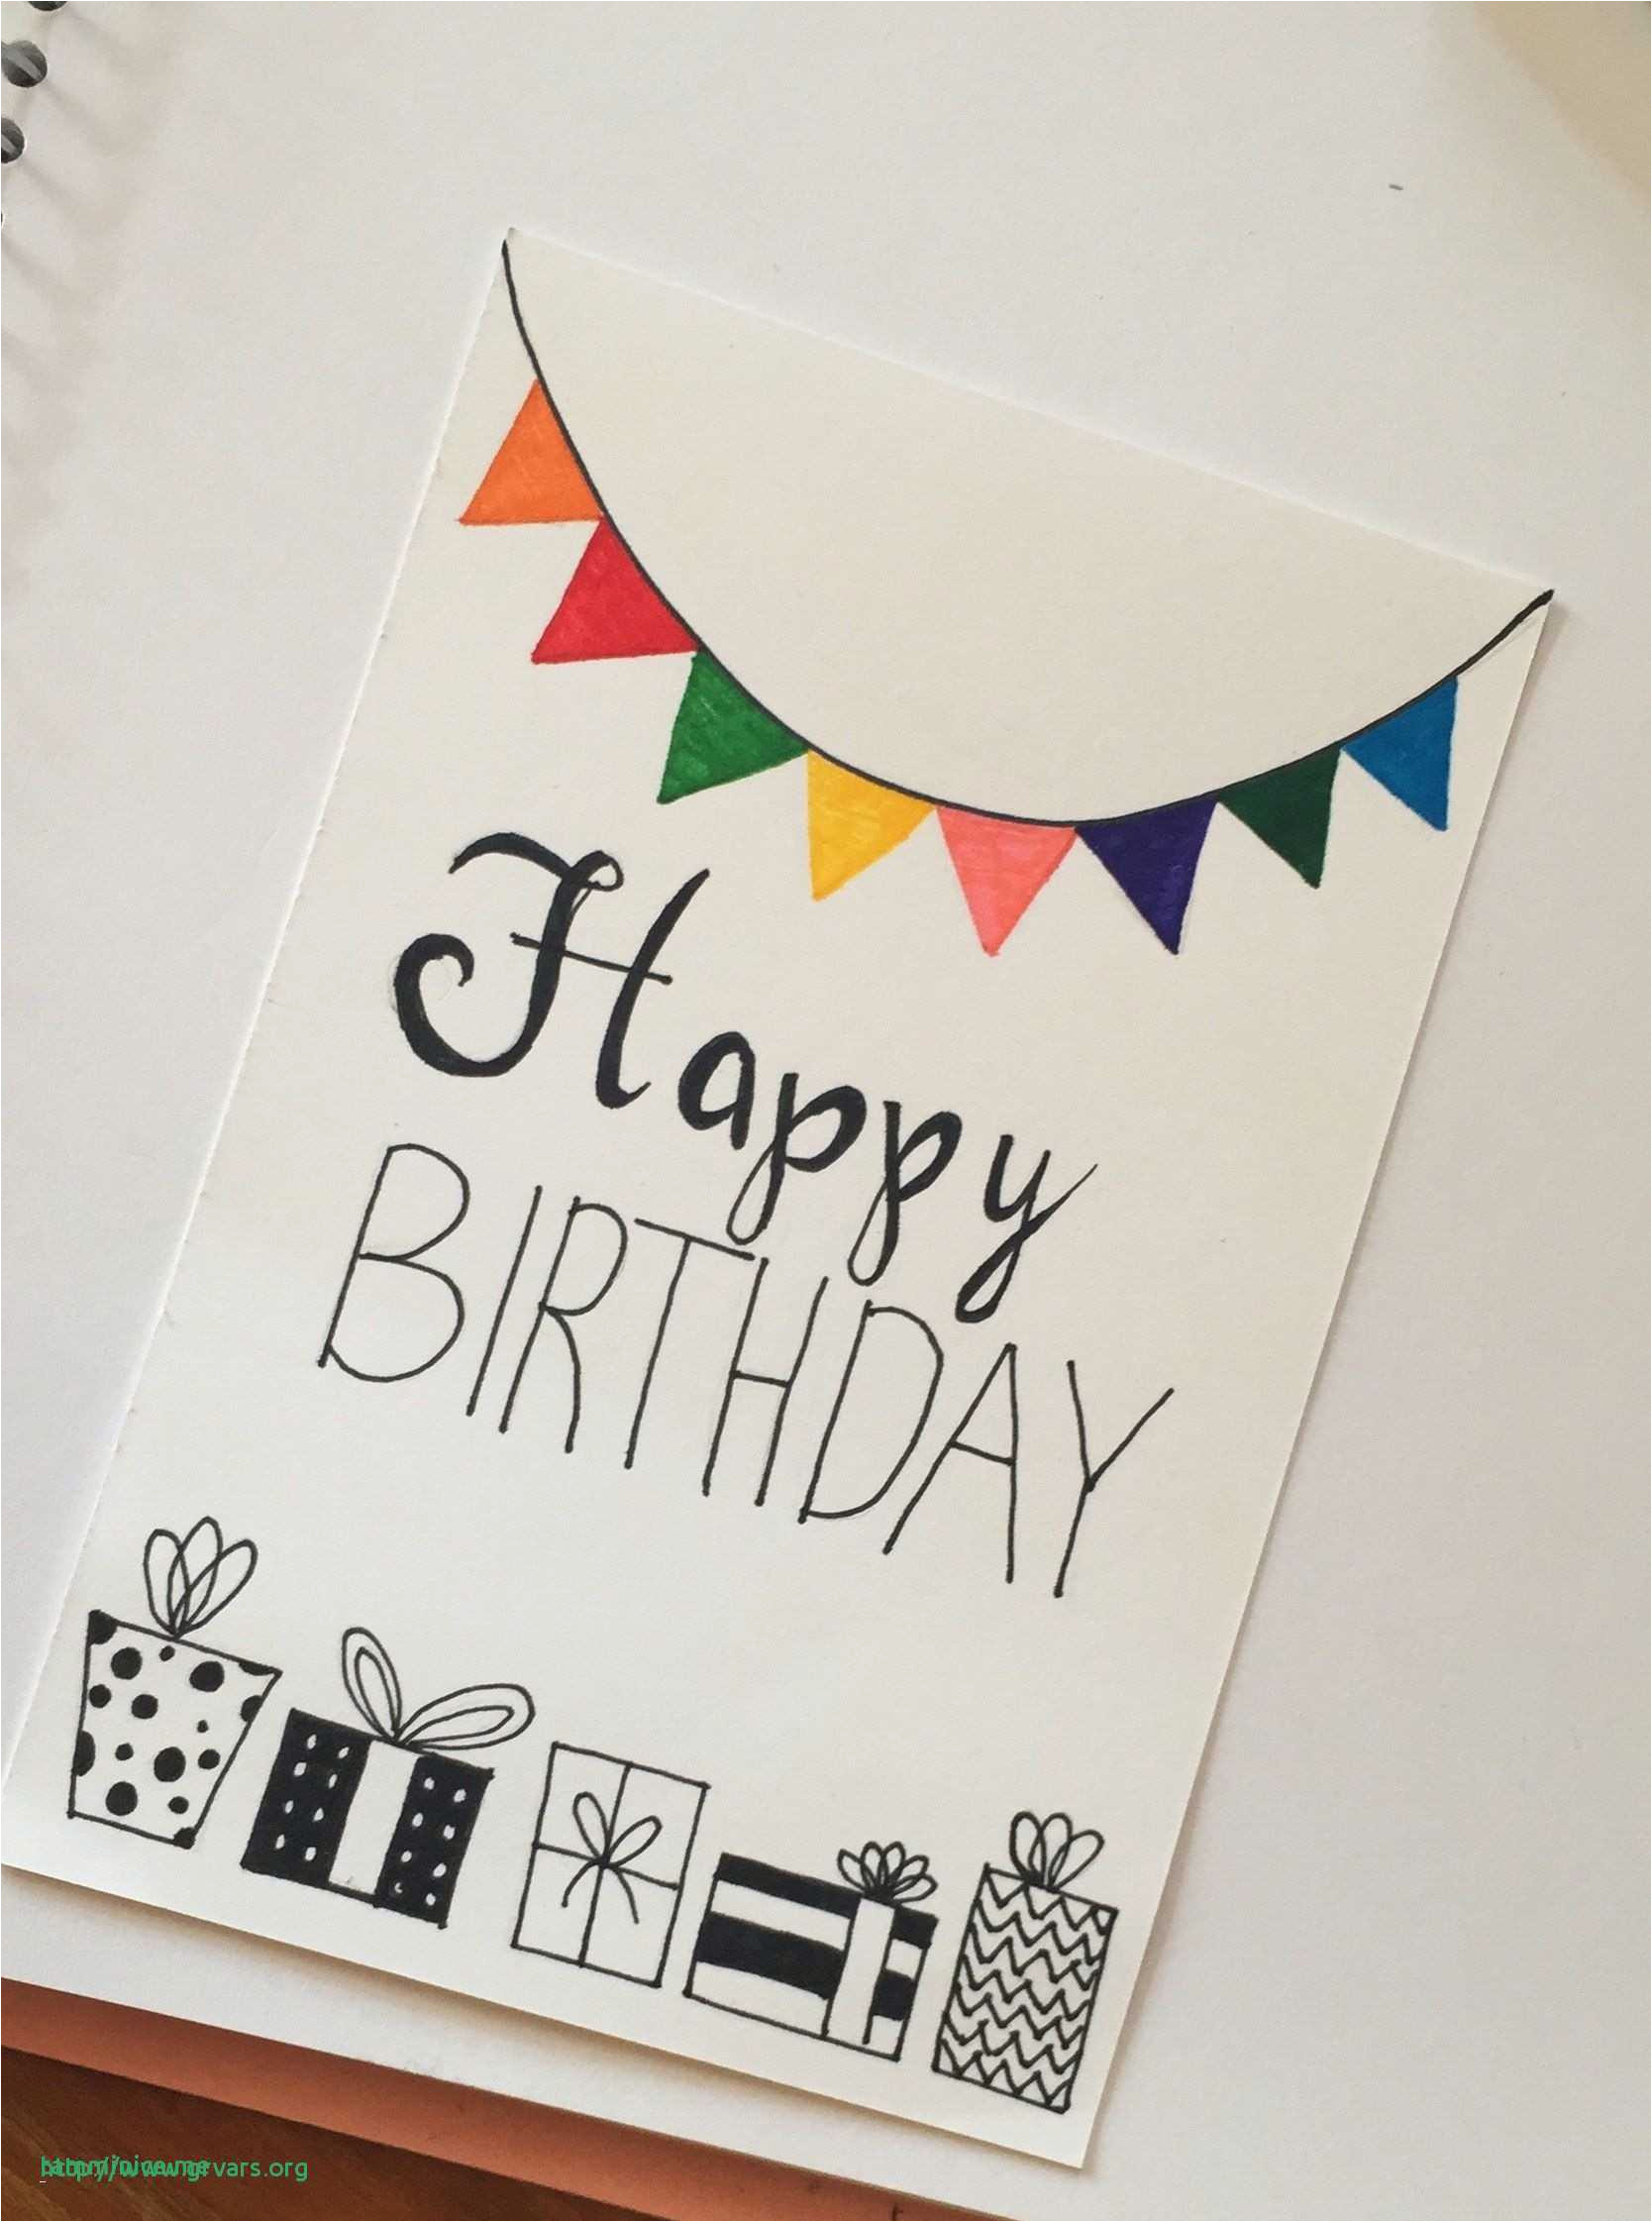 Birthday Cards Ideas For Friends How To Make Diy Birthday Cards For Best Friend Simple Handmade